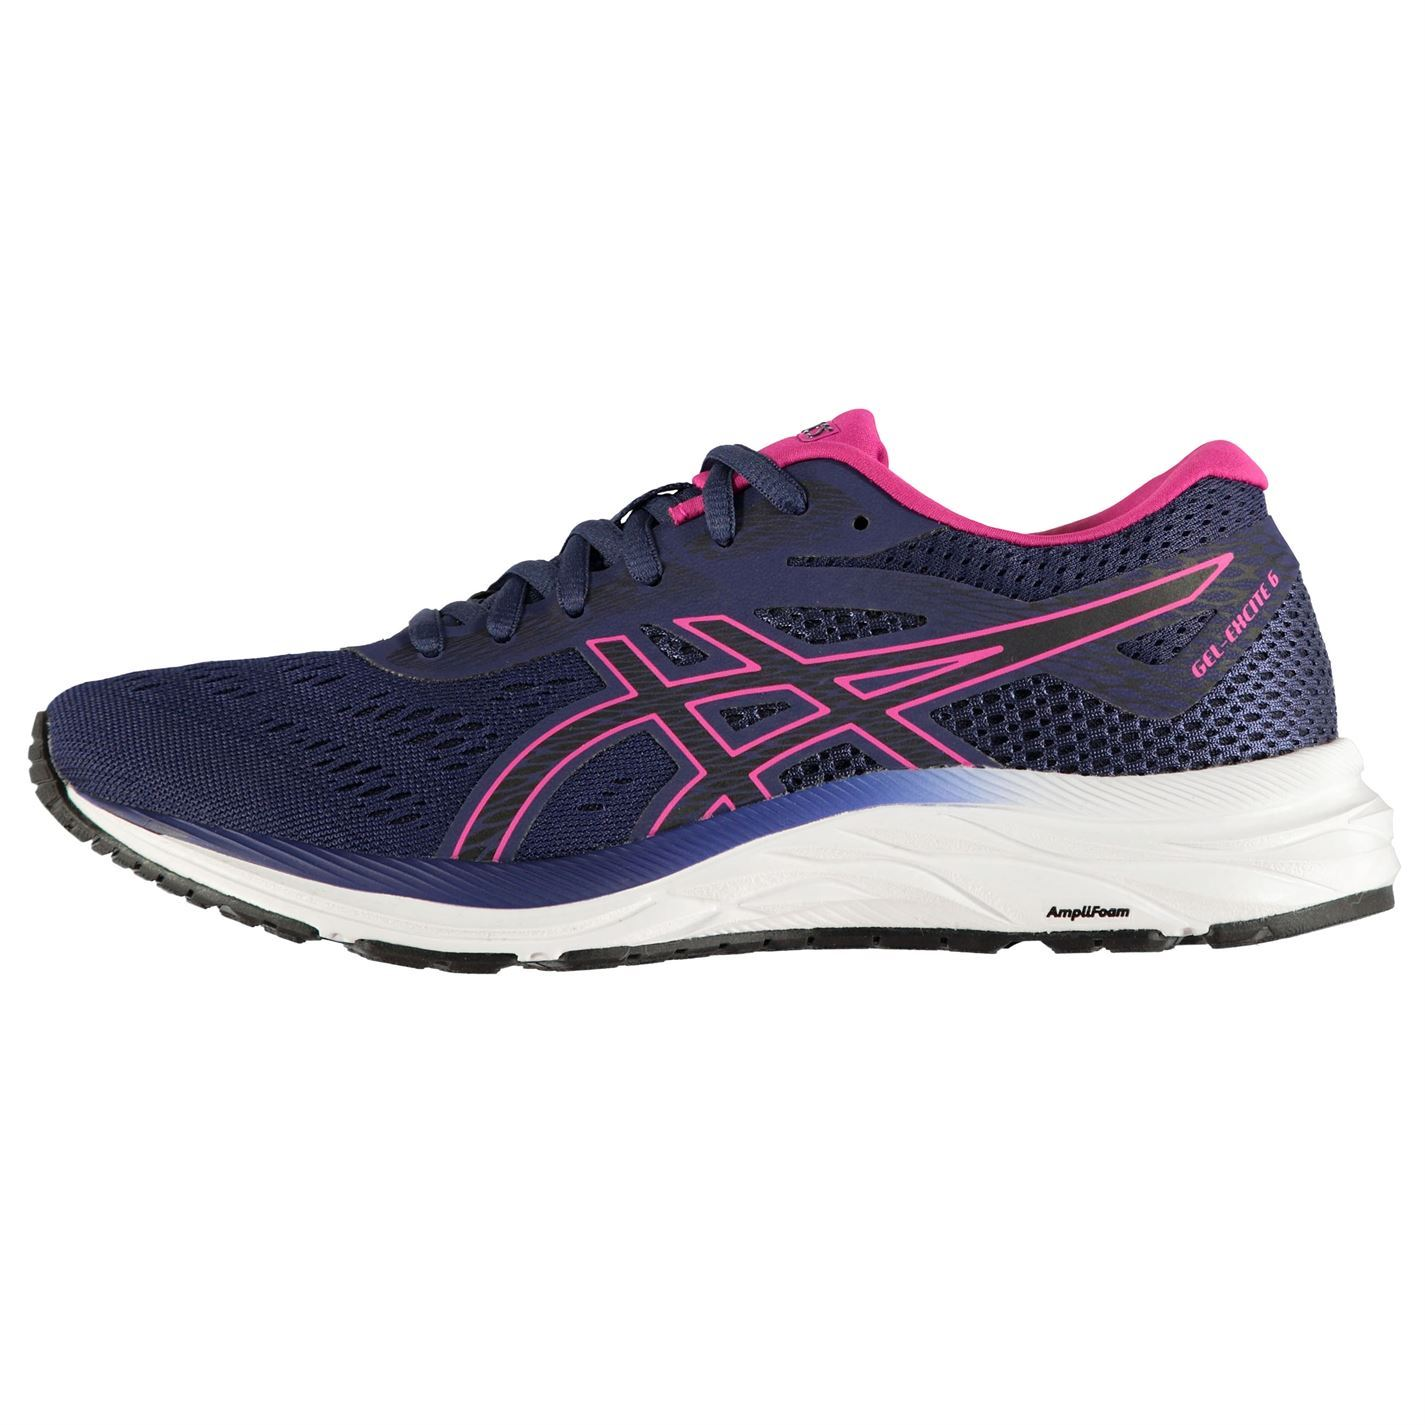 Details about Asics Gel Moya Running Shoes Womens Jogging Trainers Sneakers Fitness